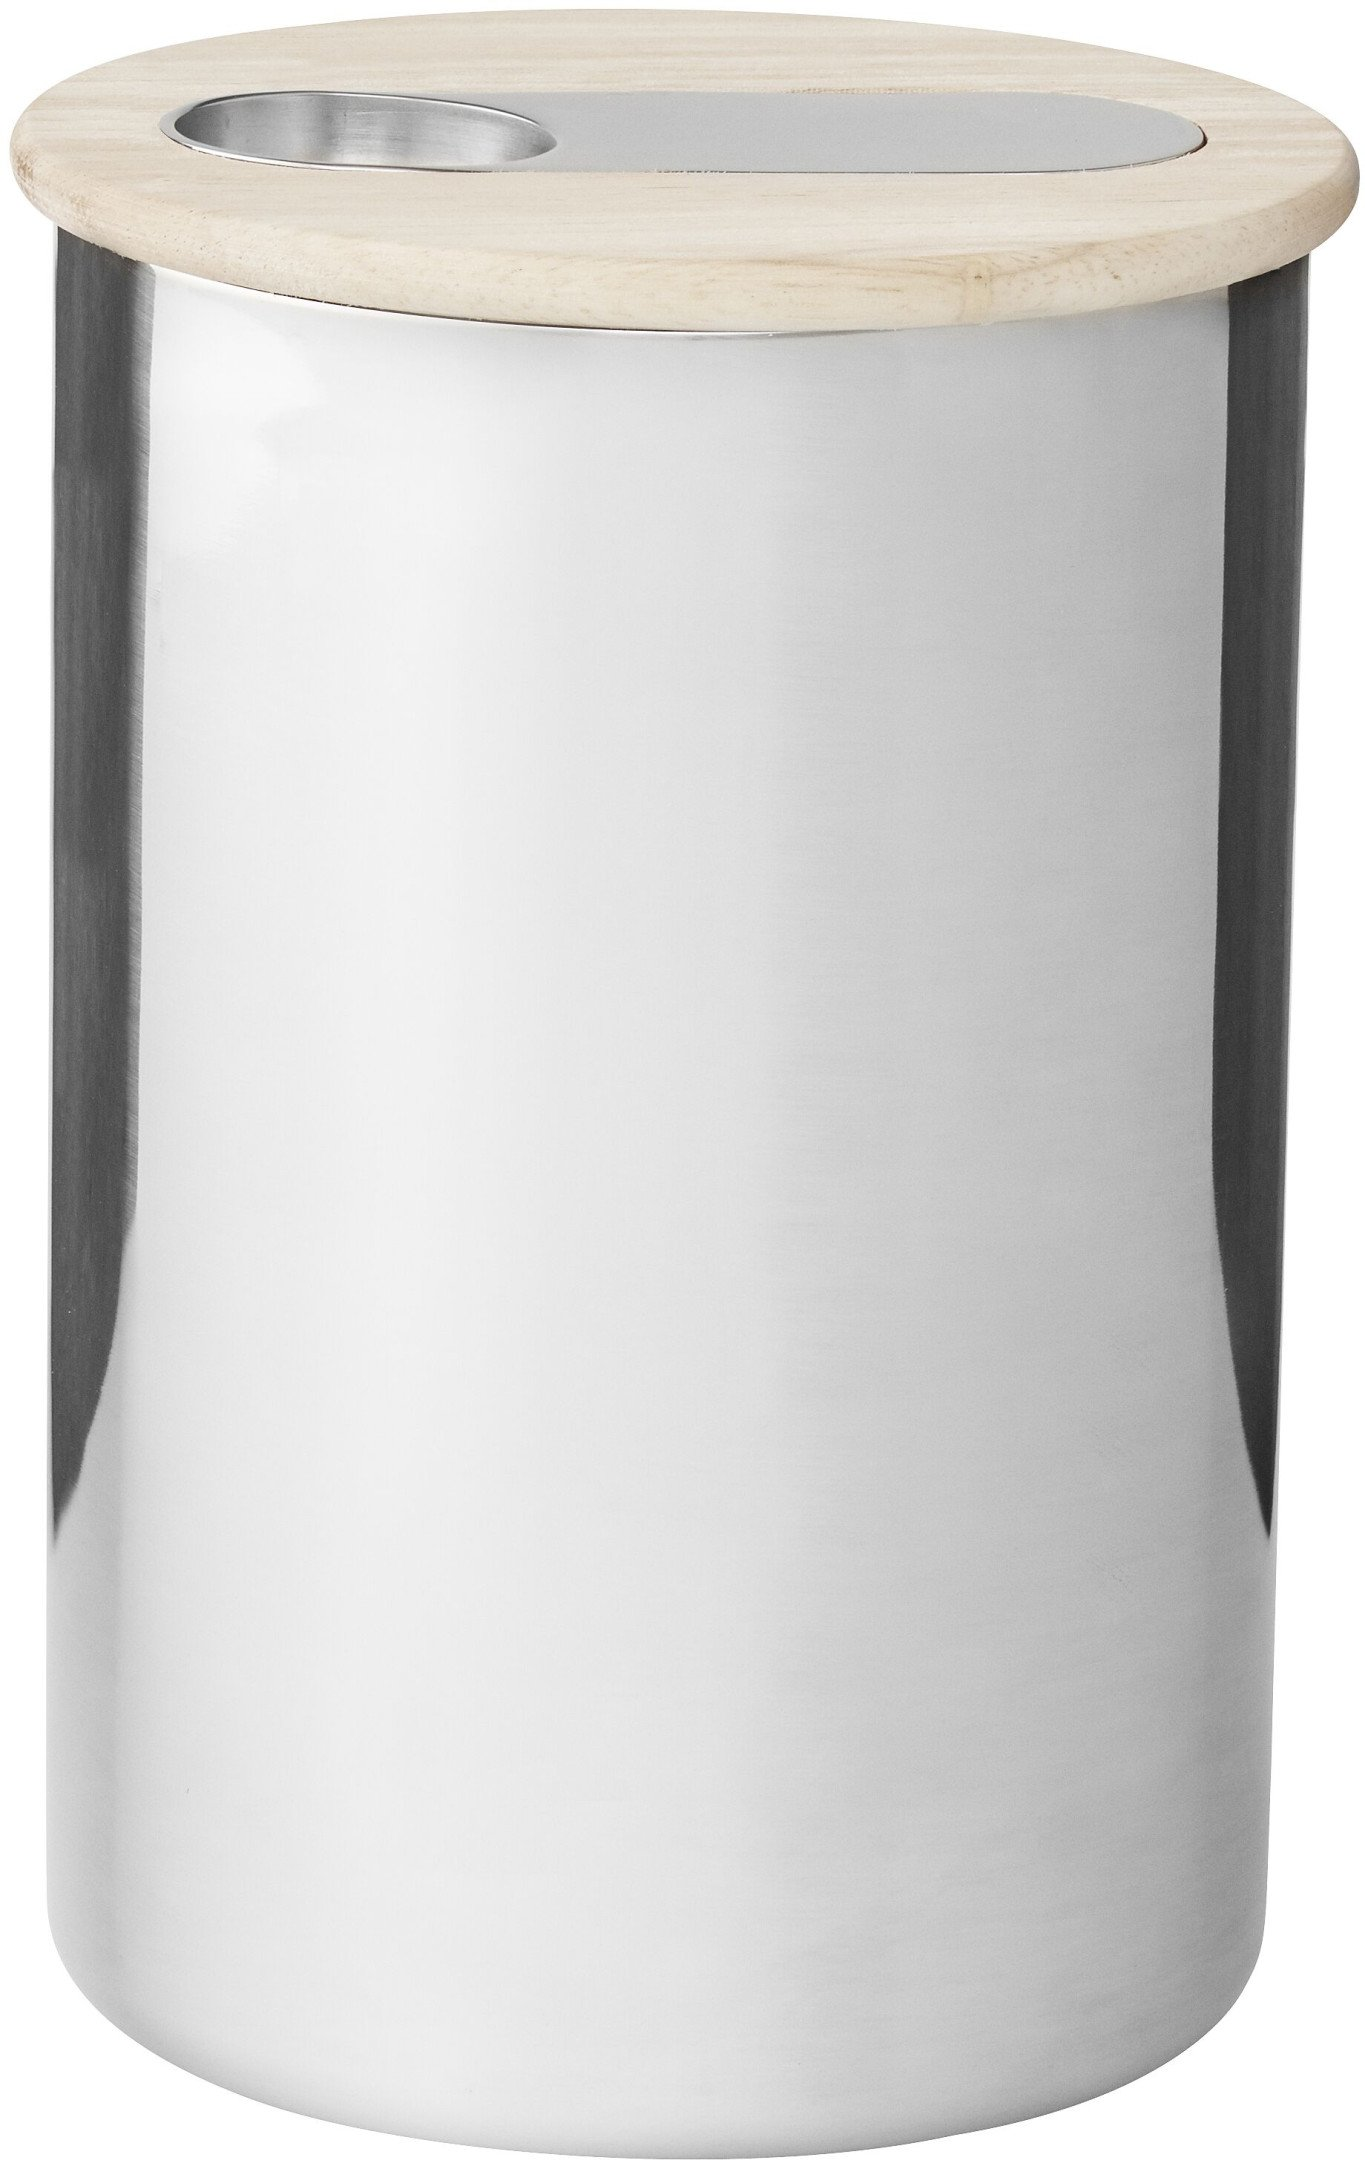 Scoop Coffee Canister 0,5 by S. Refsgaard for Stelton